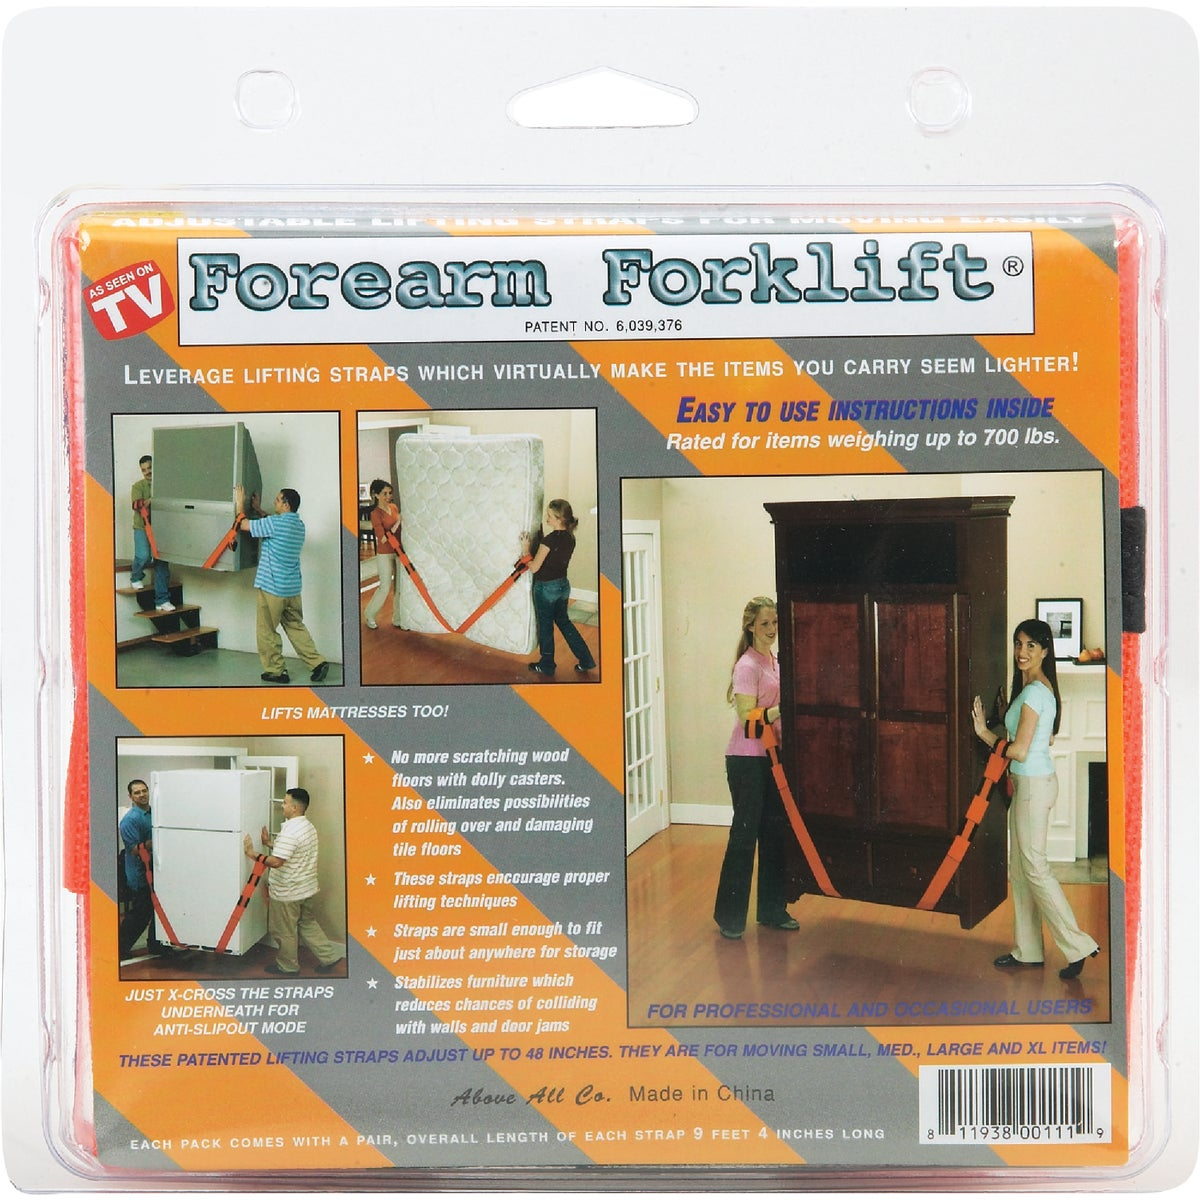 FOREARM FORKLIFT STRAPS - L74995CN by Above All